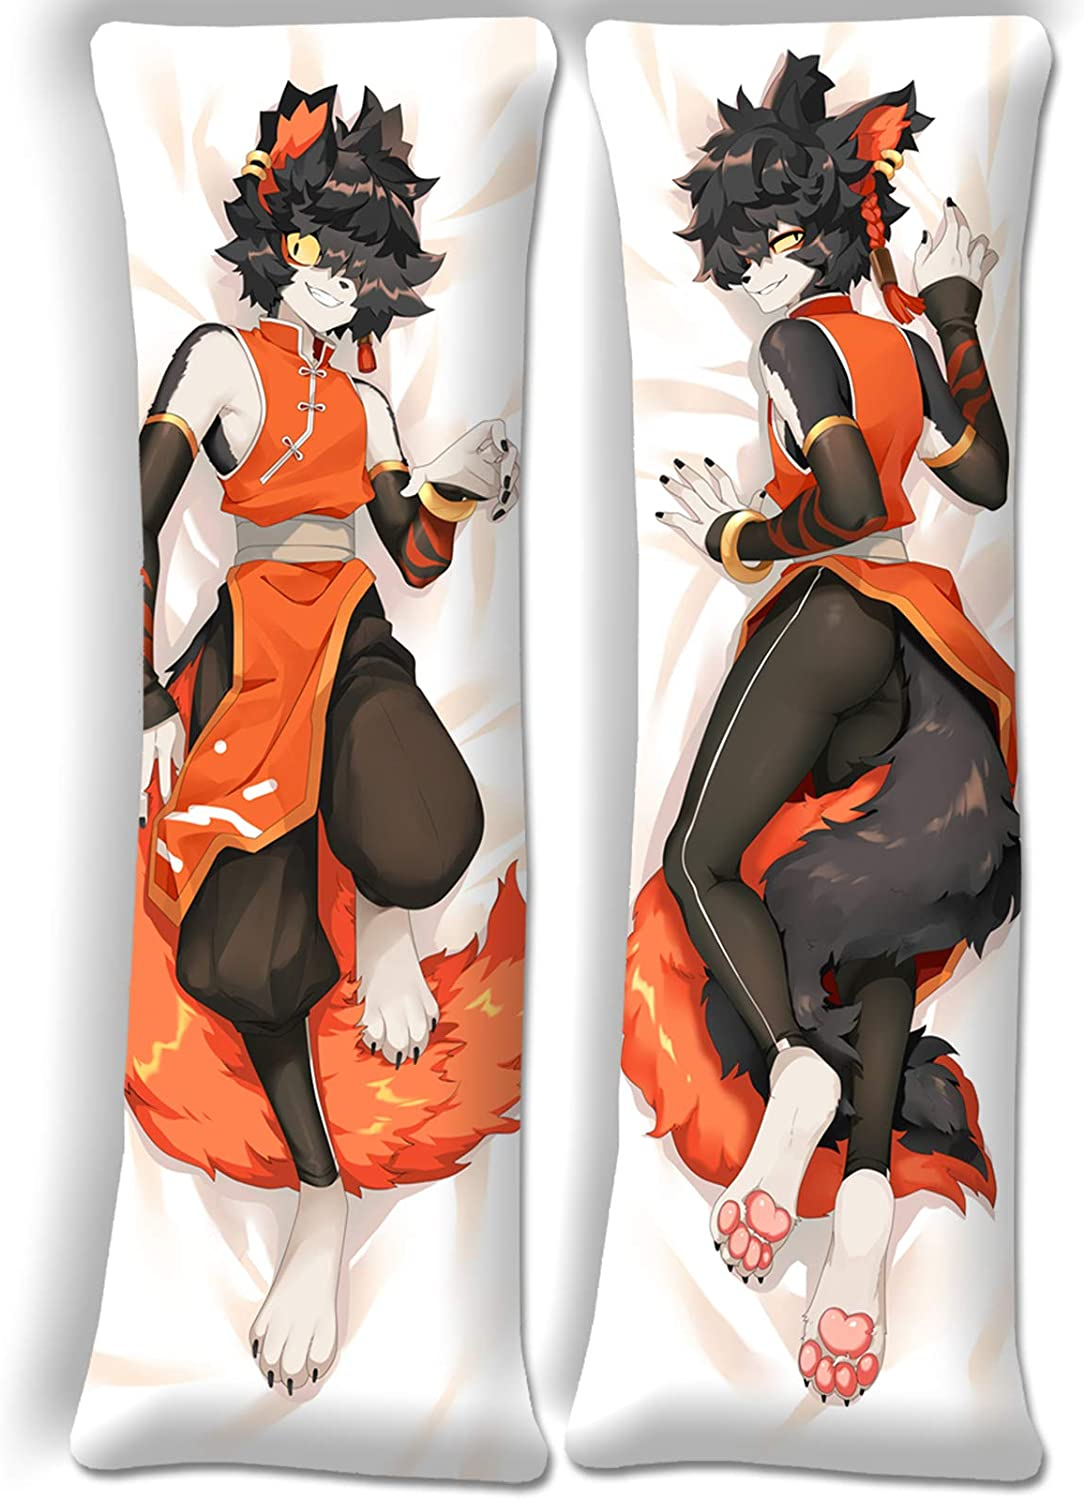 Arknights Aak Body Pillow Cover Anime Kids Peach Same day shipping Pillowcase Max 78% OFF Skin